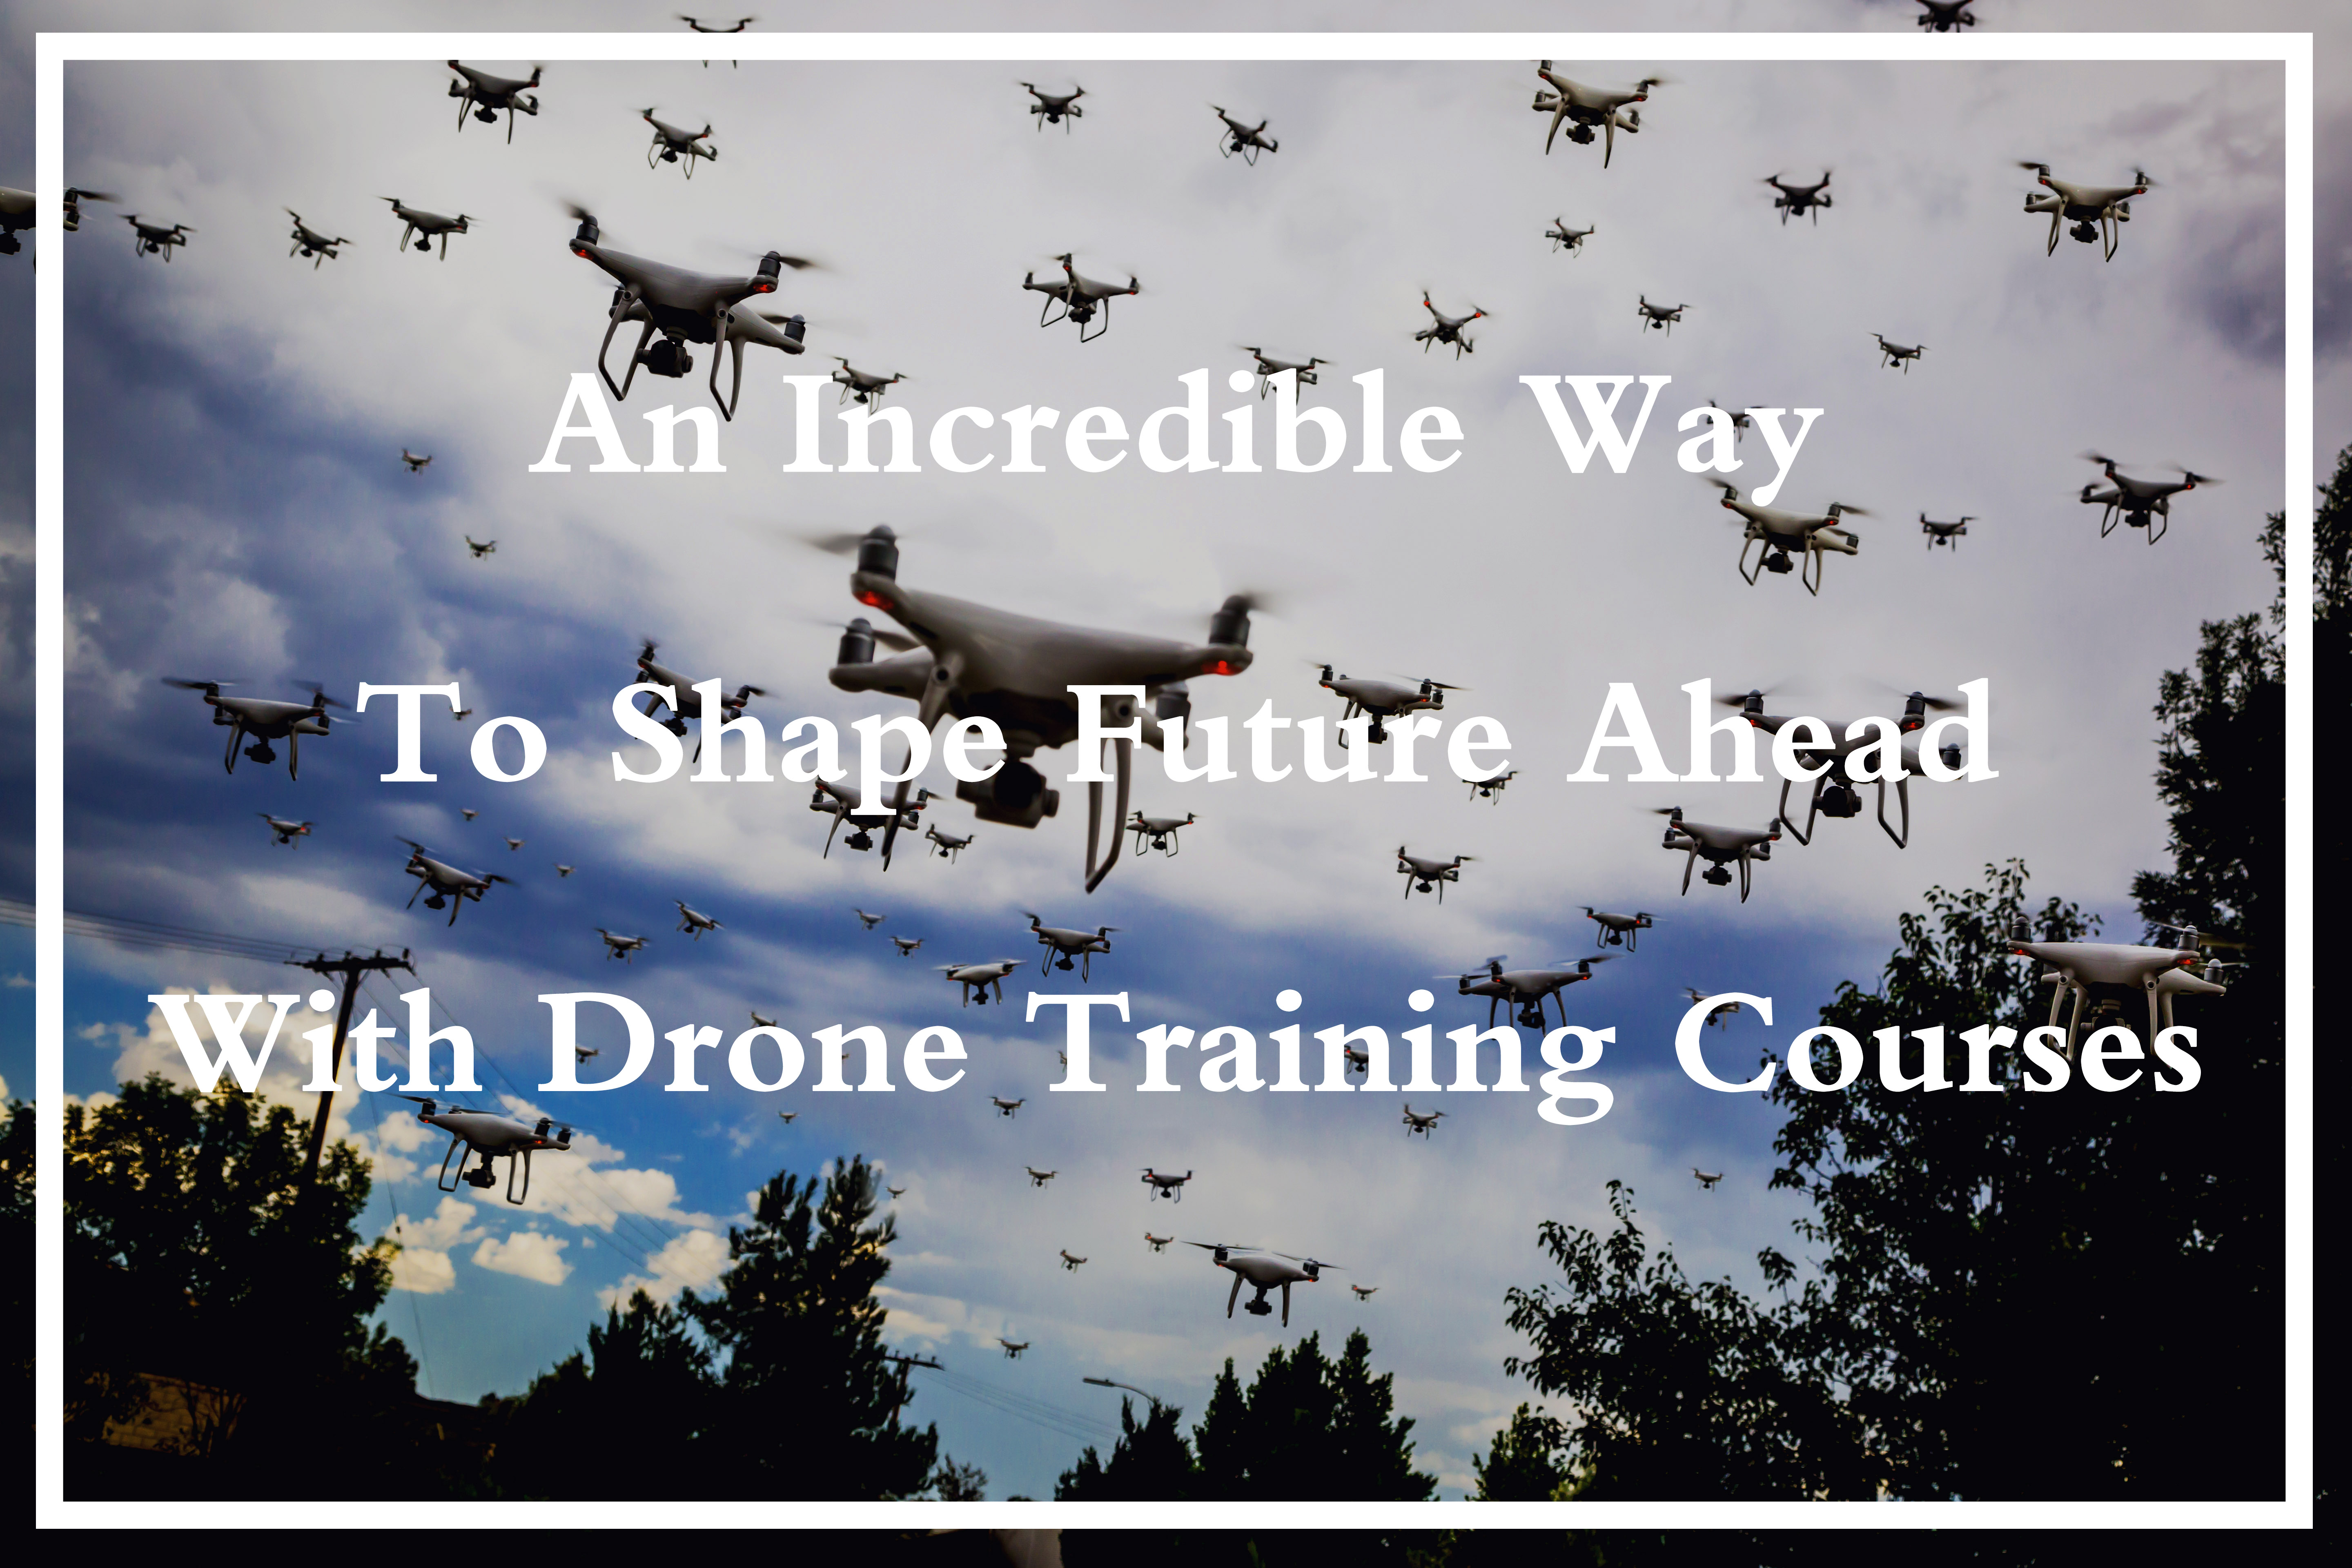 Incredible Way to Shape Future Ahead With Drone Training Courses